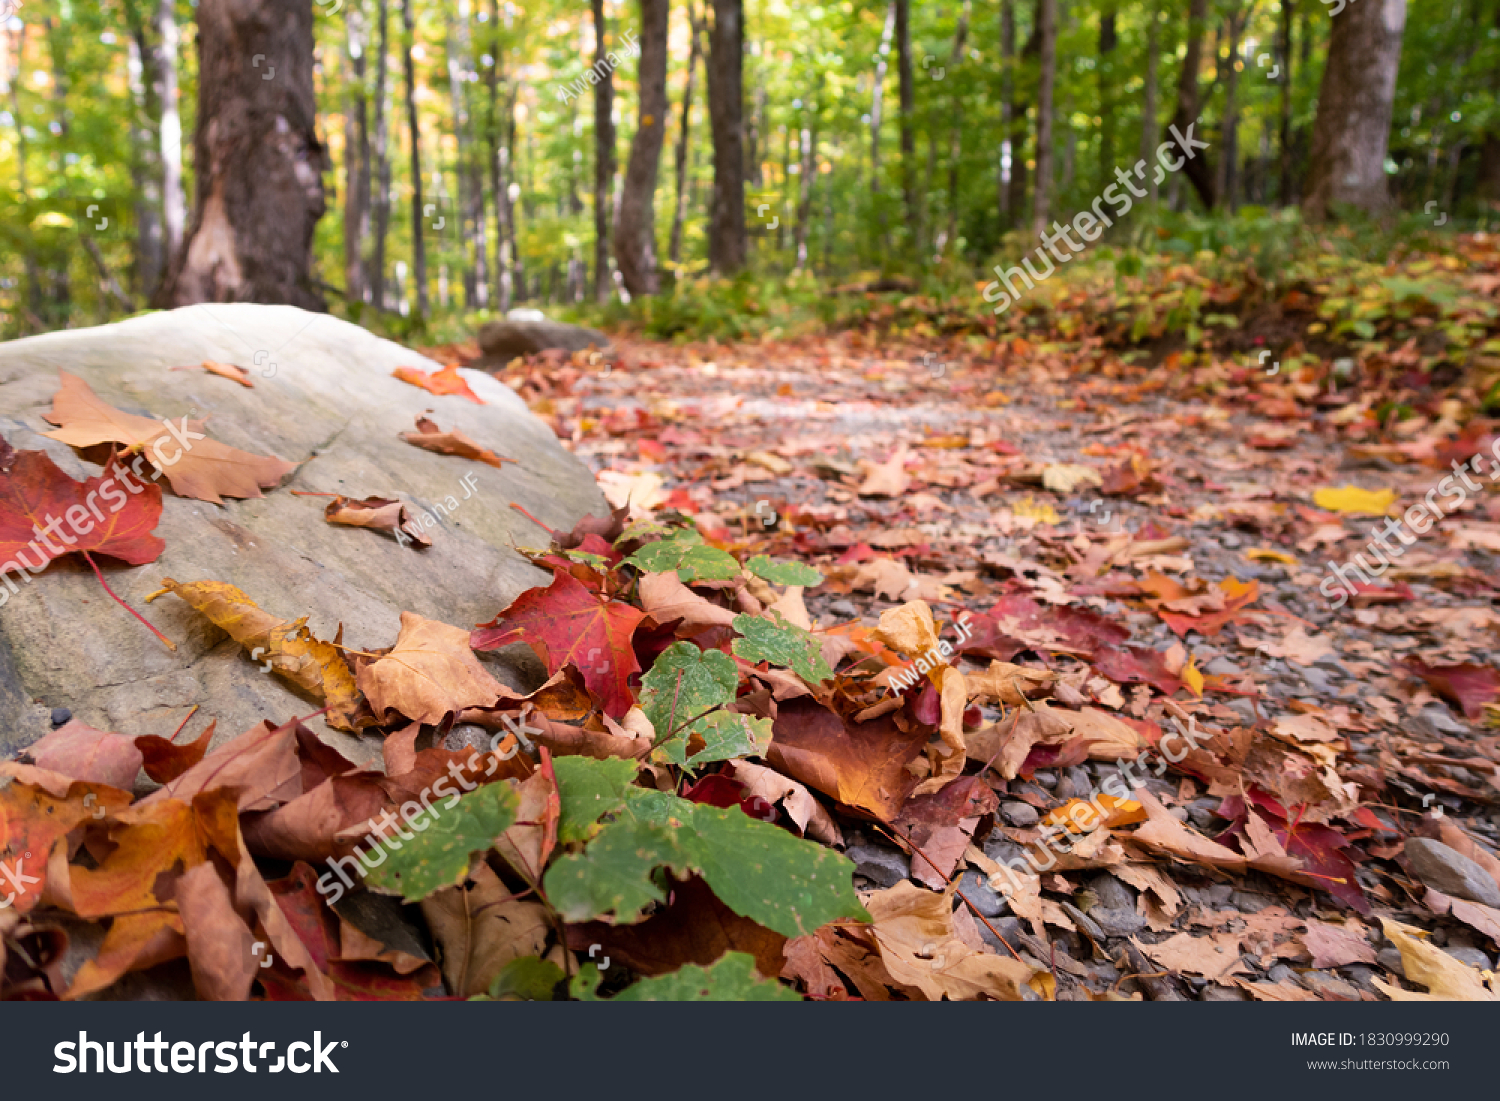 stock-photo-view-of-fallen-leaves-on-the